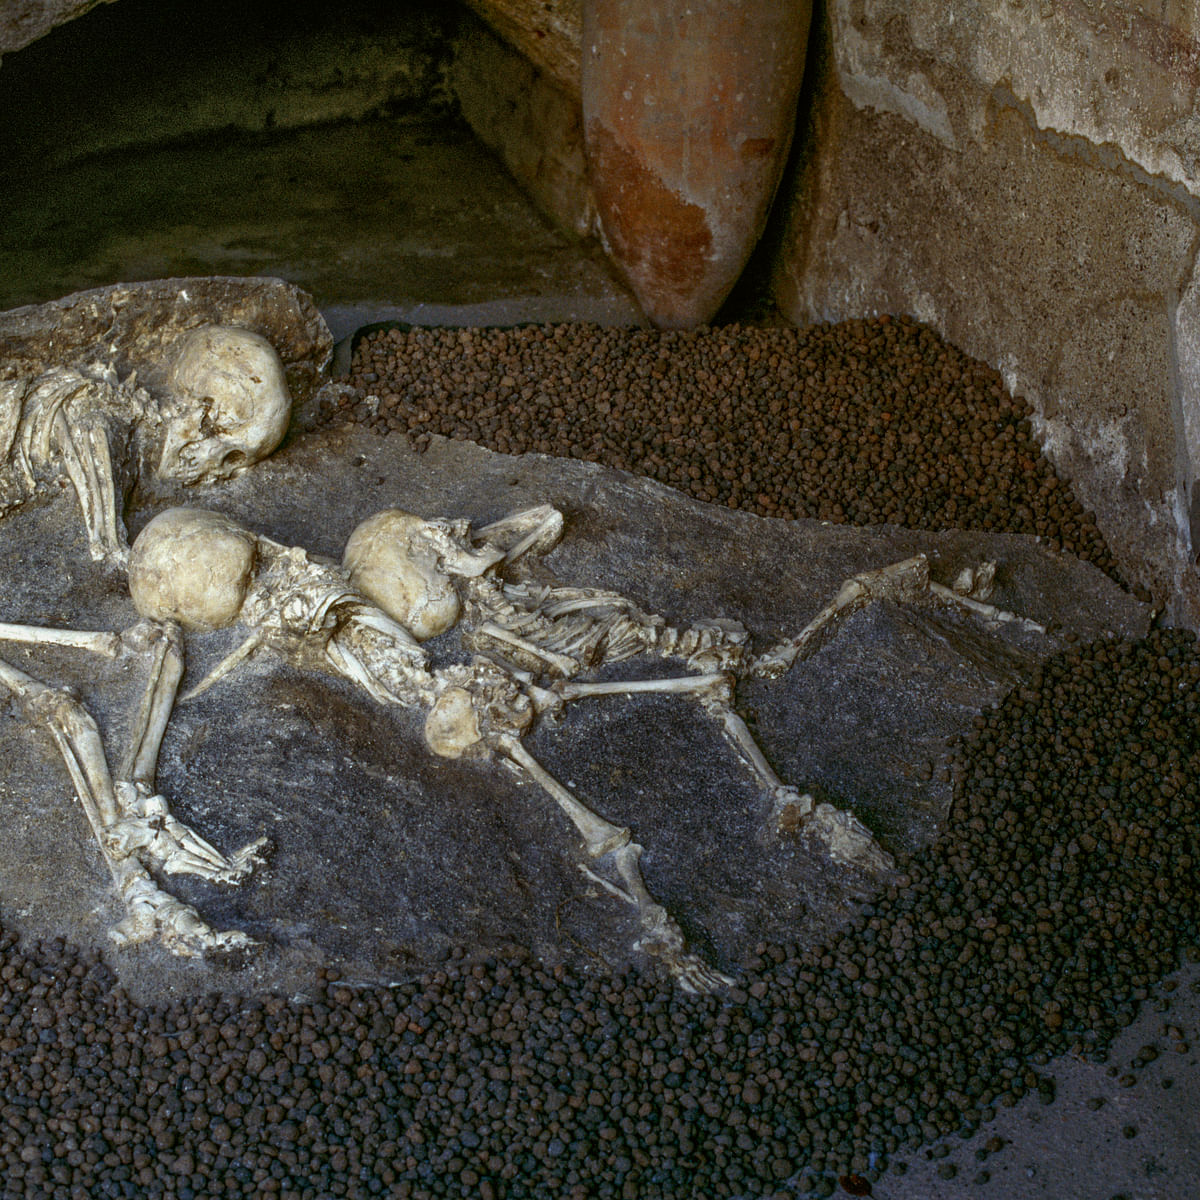 Human skeletons found in the House of Neptune and Amphitrite, Herculaneum (UNESCO World Heritage Site, 1997), Campania, Italy, Roman civilization, 1st century.